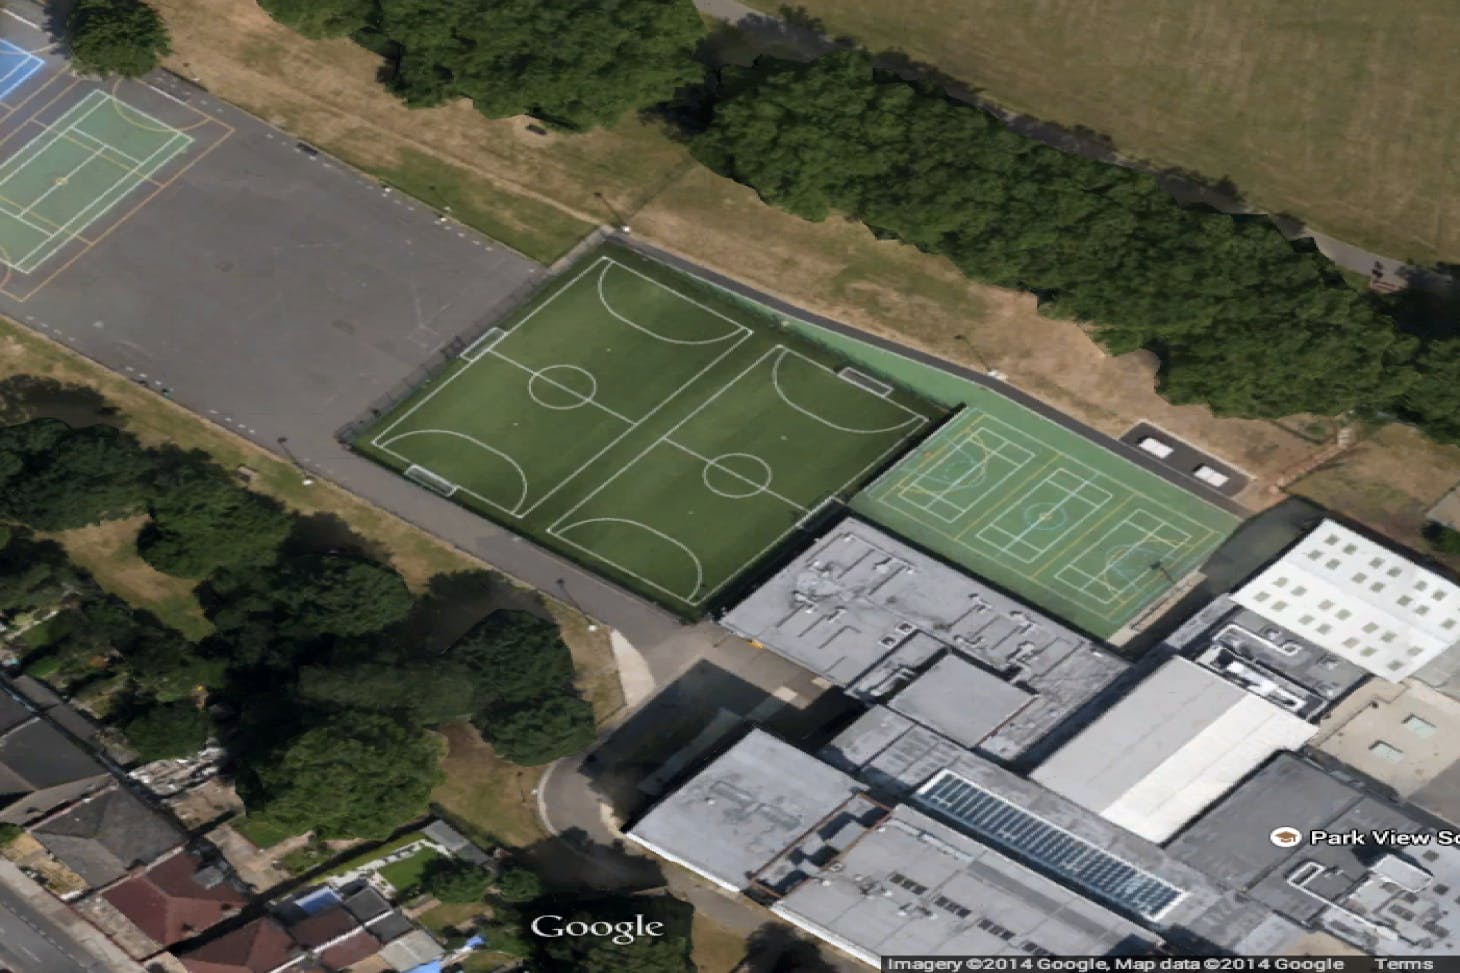 Park View Academy 5 a side | 3G Astroturf football pitch